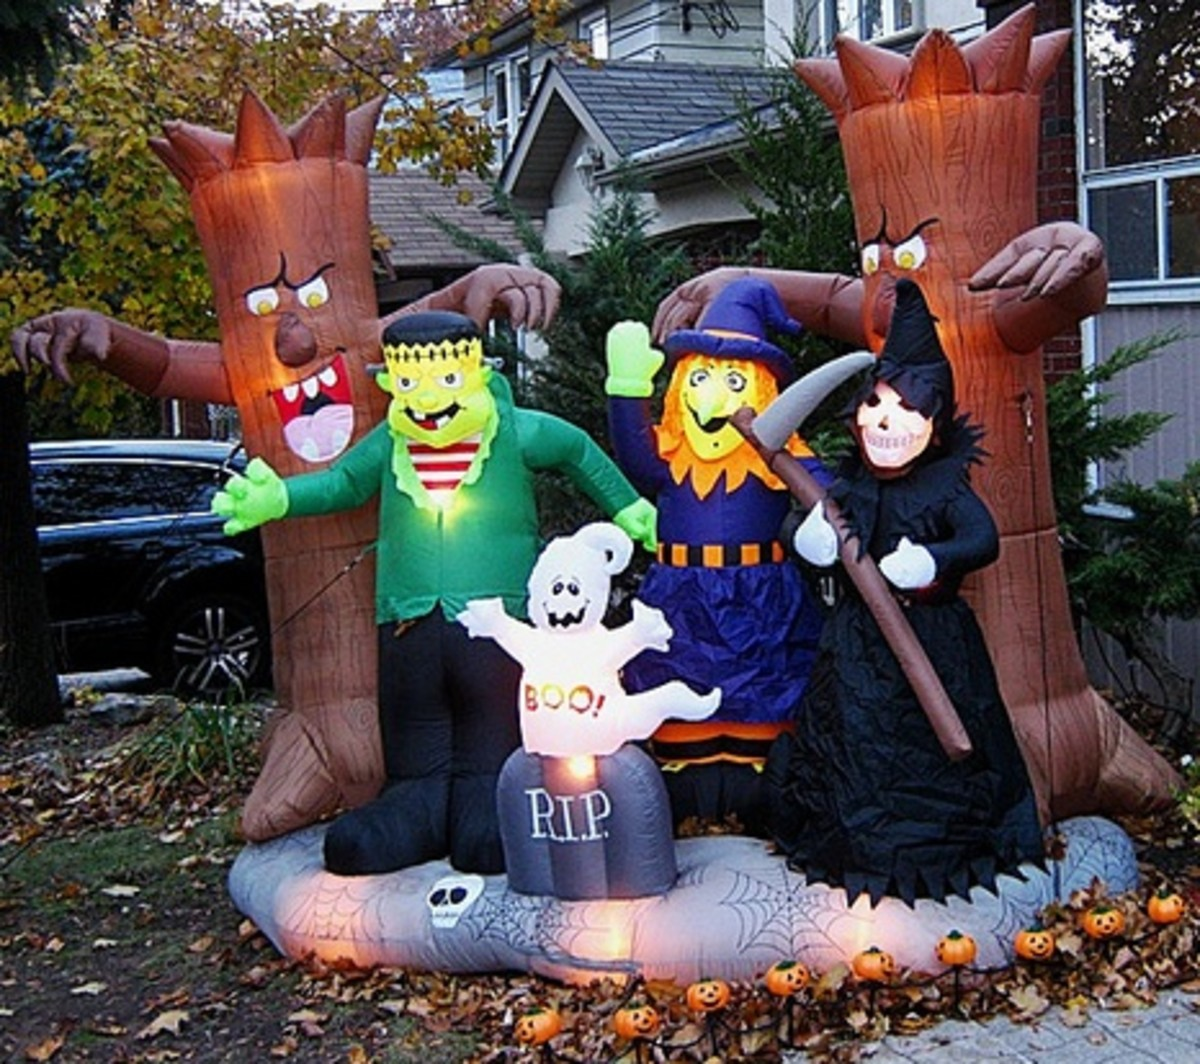 Monsters of all shapes and sizes can gather together in your yard for Halloween.